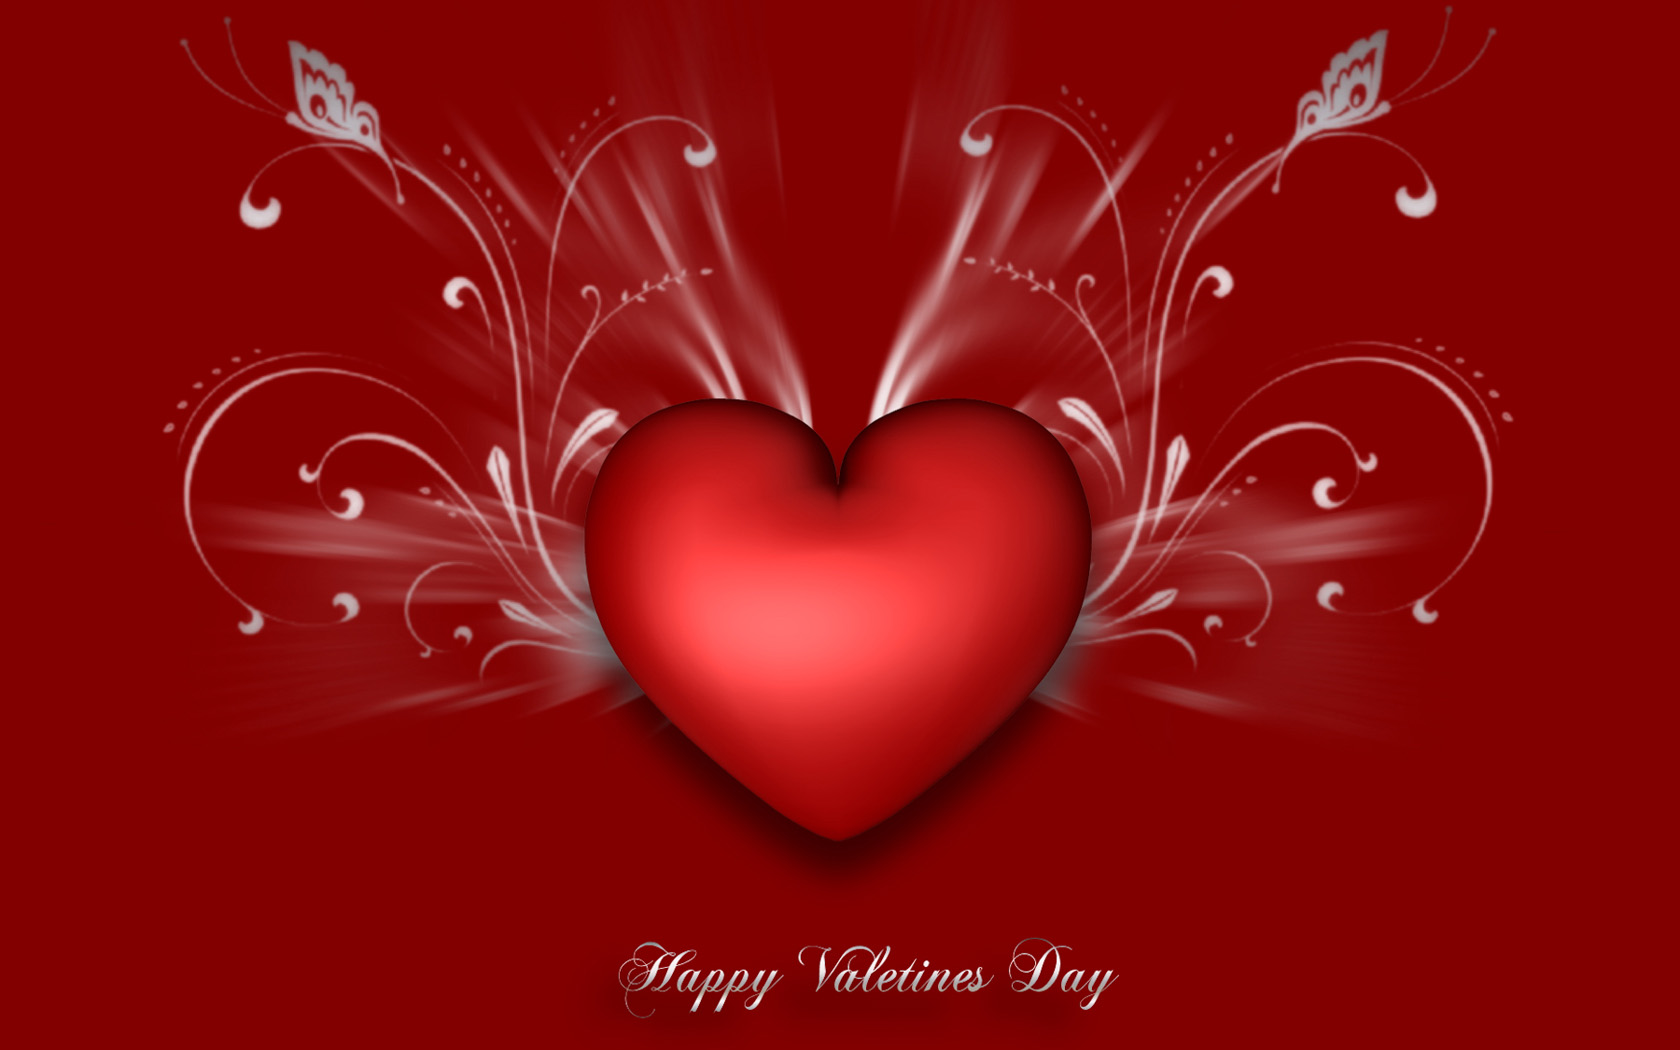 Valentines Day Backgrounds Wallpaper